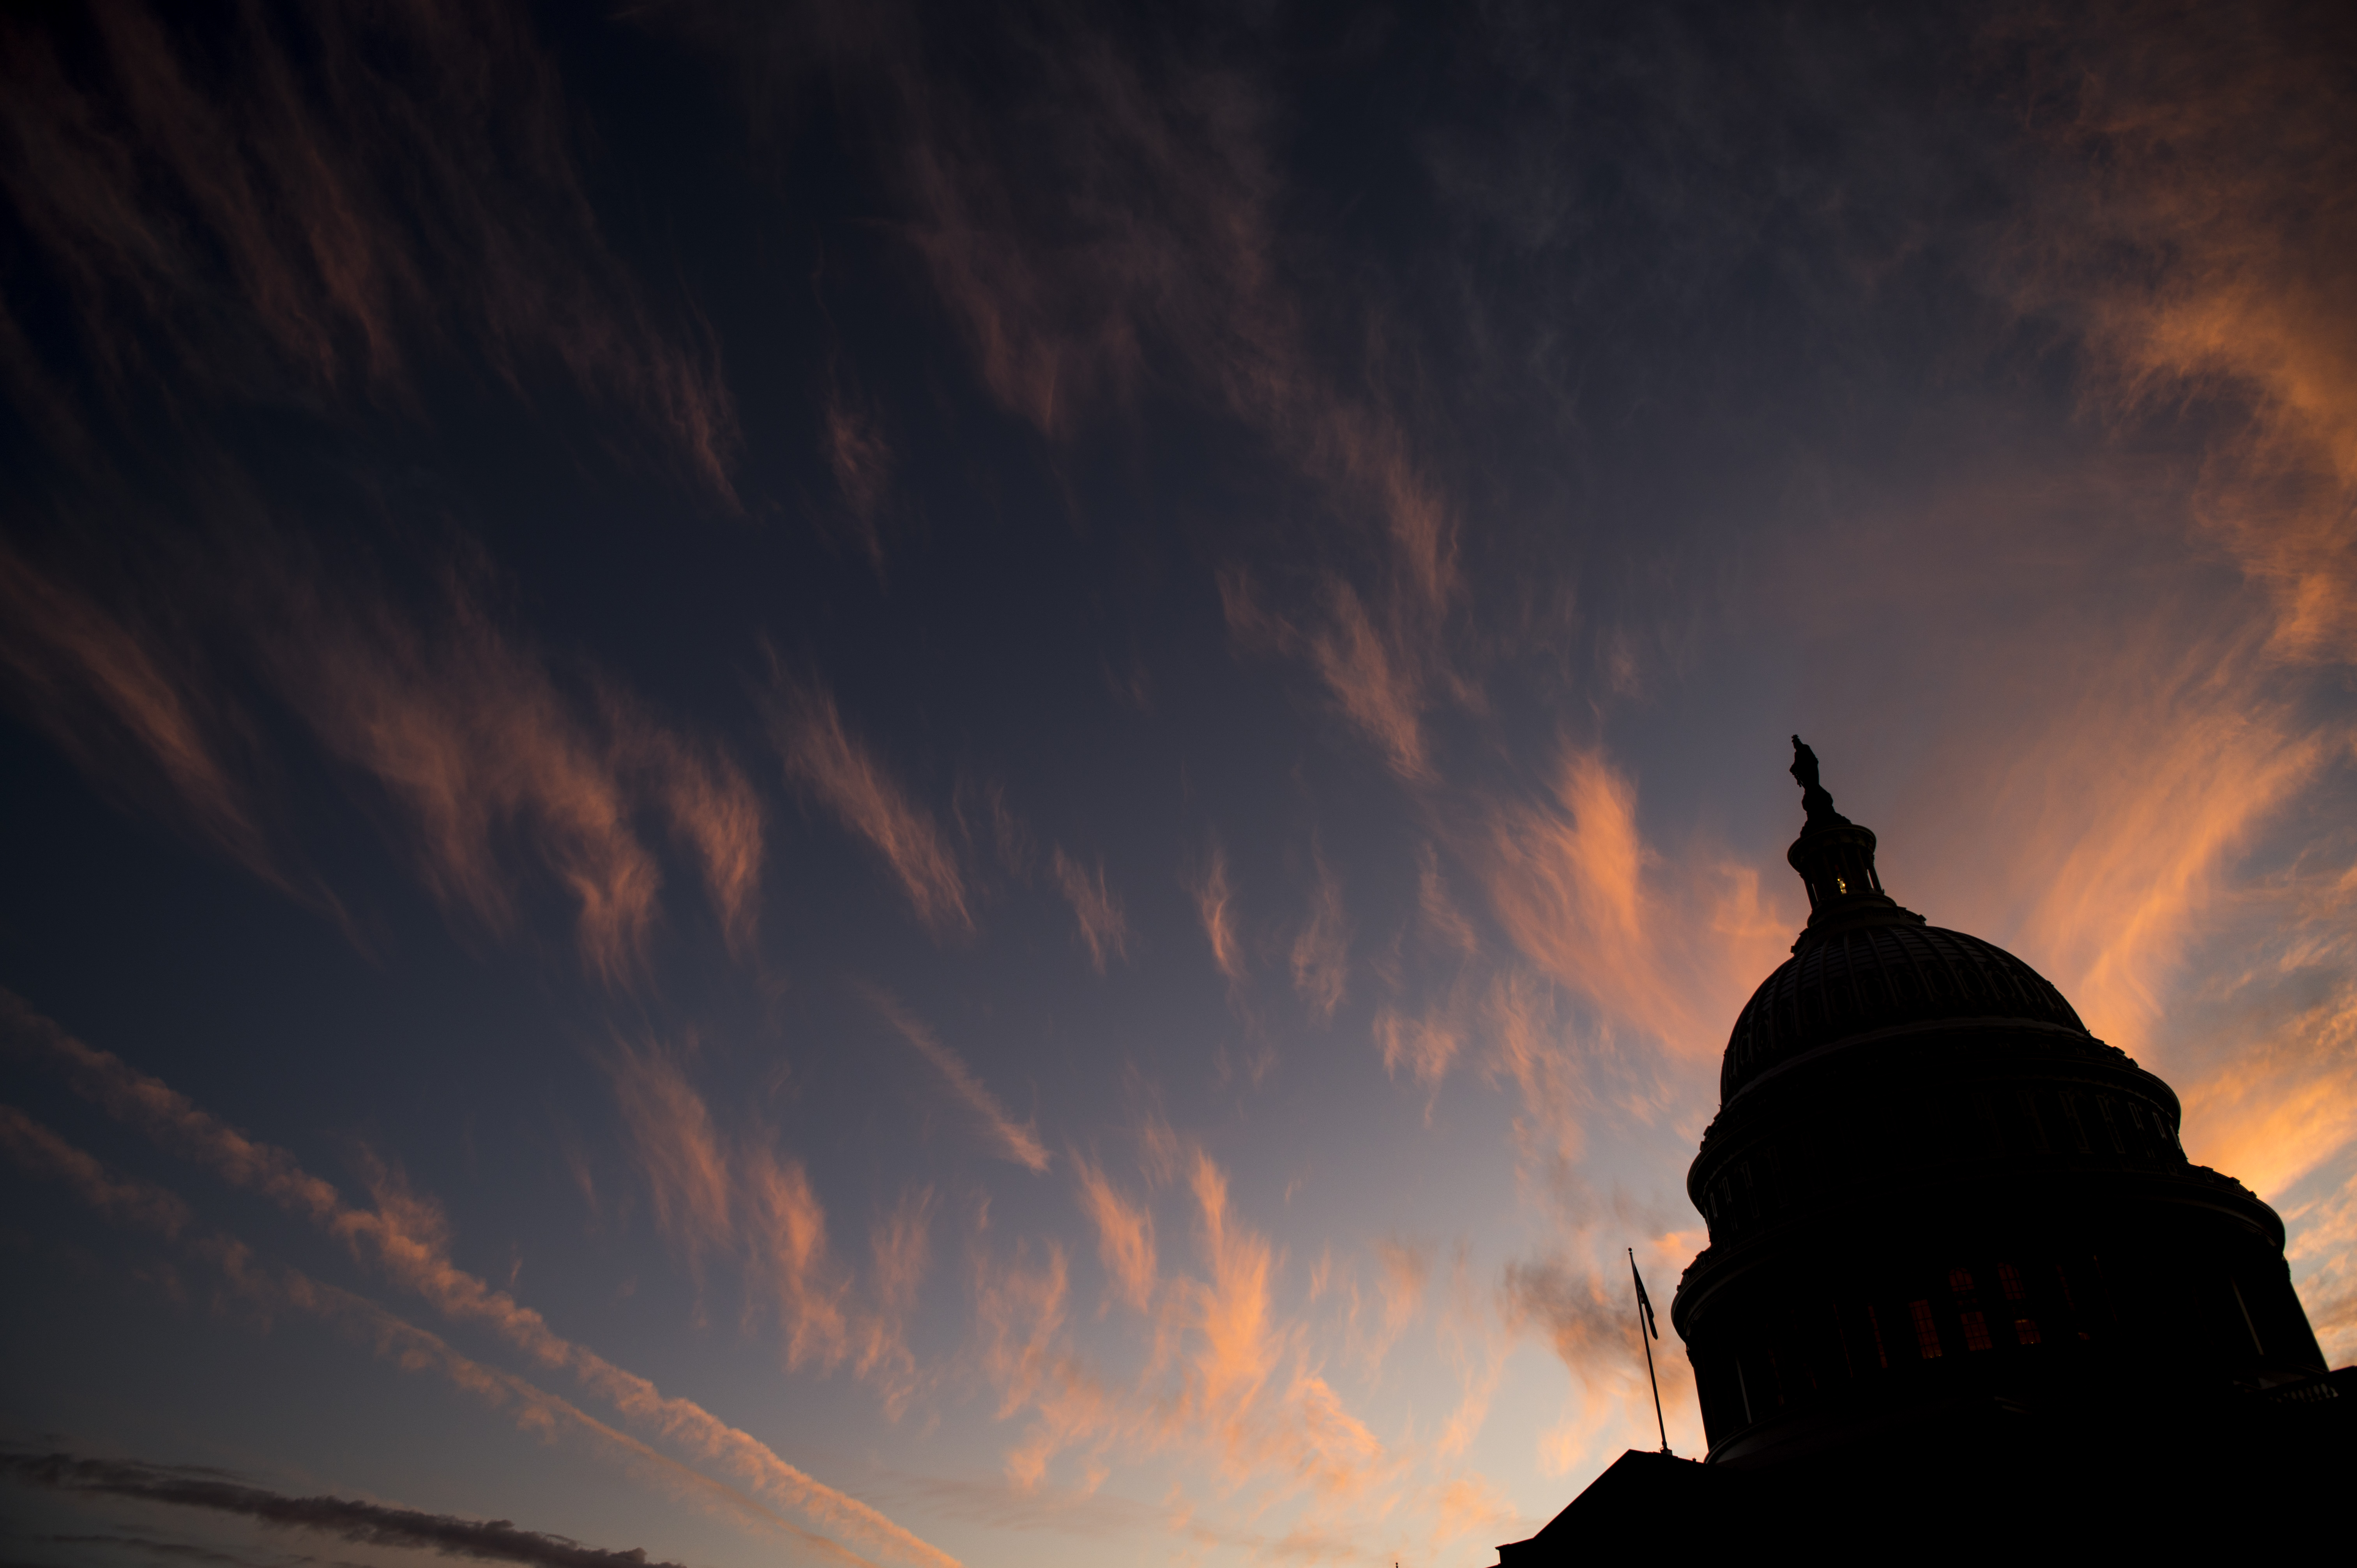 UNITED STATES - NOVEMBER 14: The sun sets over the U.S. Capitol dome on Thursday, Nov. 14, 2019. (Photo By Bill Clark/CQ Roll Call)